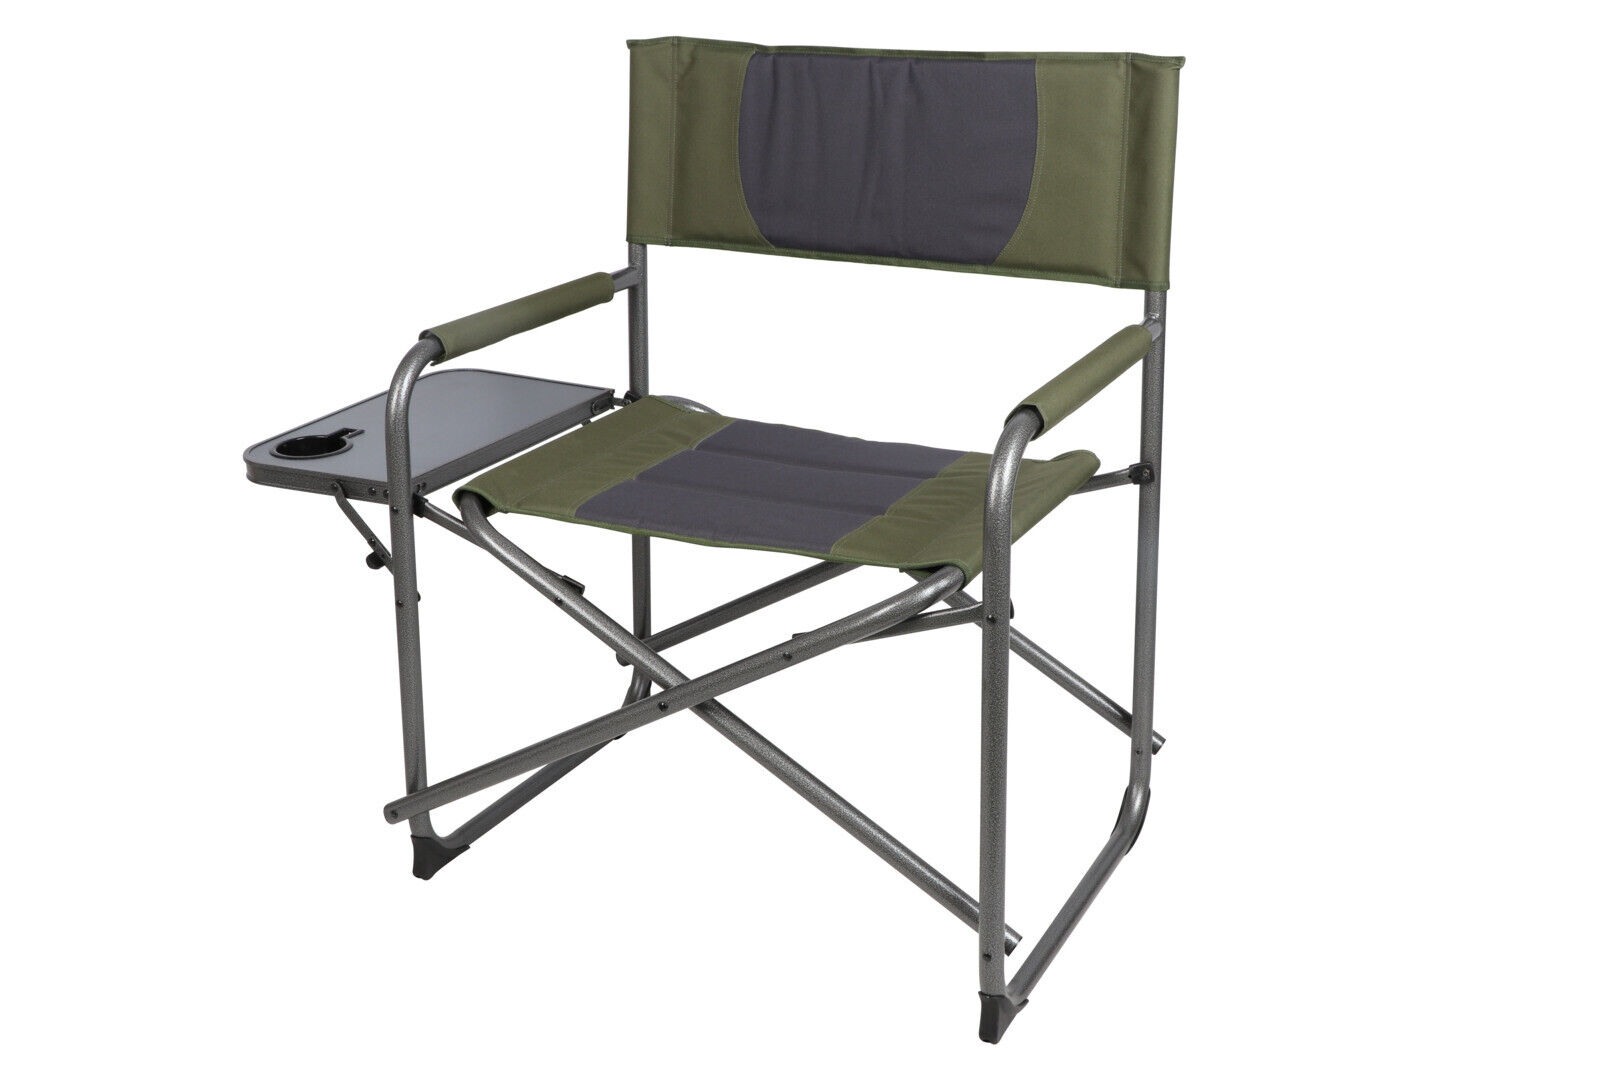 Details About Ozark Trail Oversized Director S Camping Chair With Side Table Green Grey